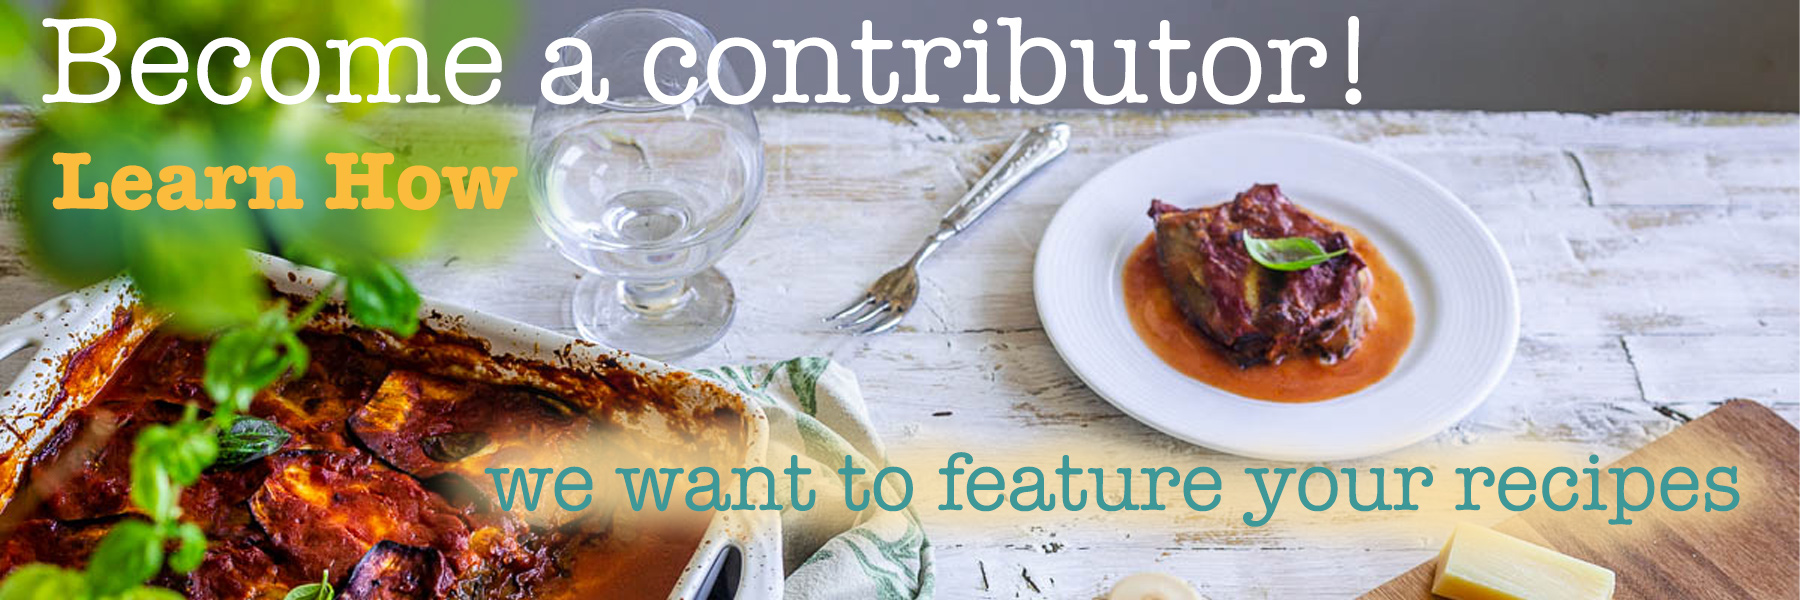 become a contributor banner with a table and a meal